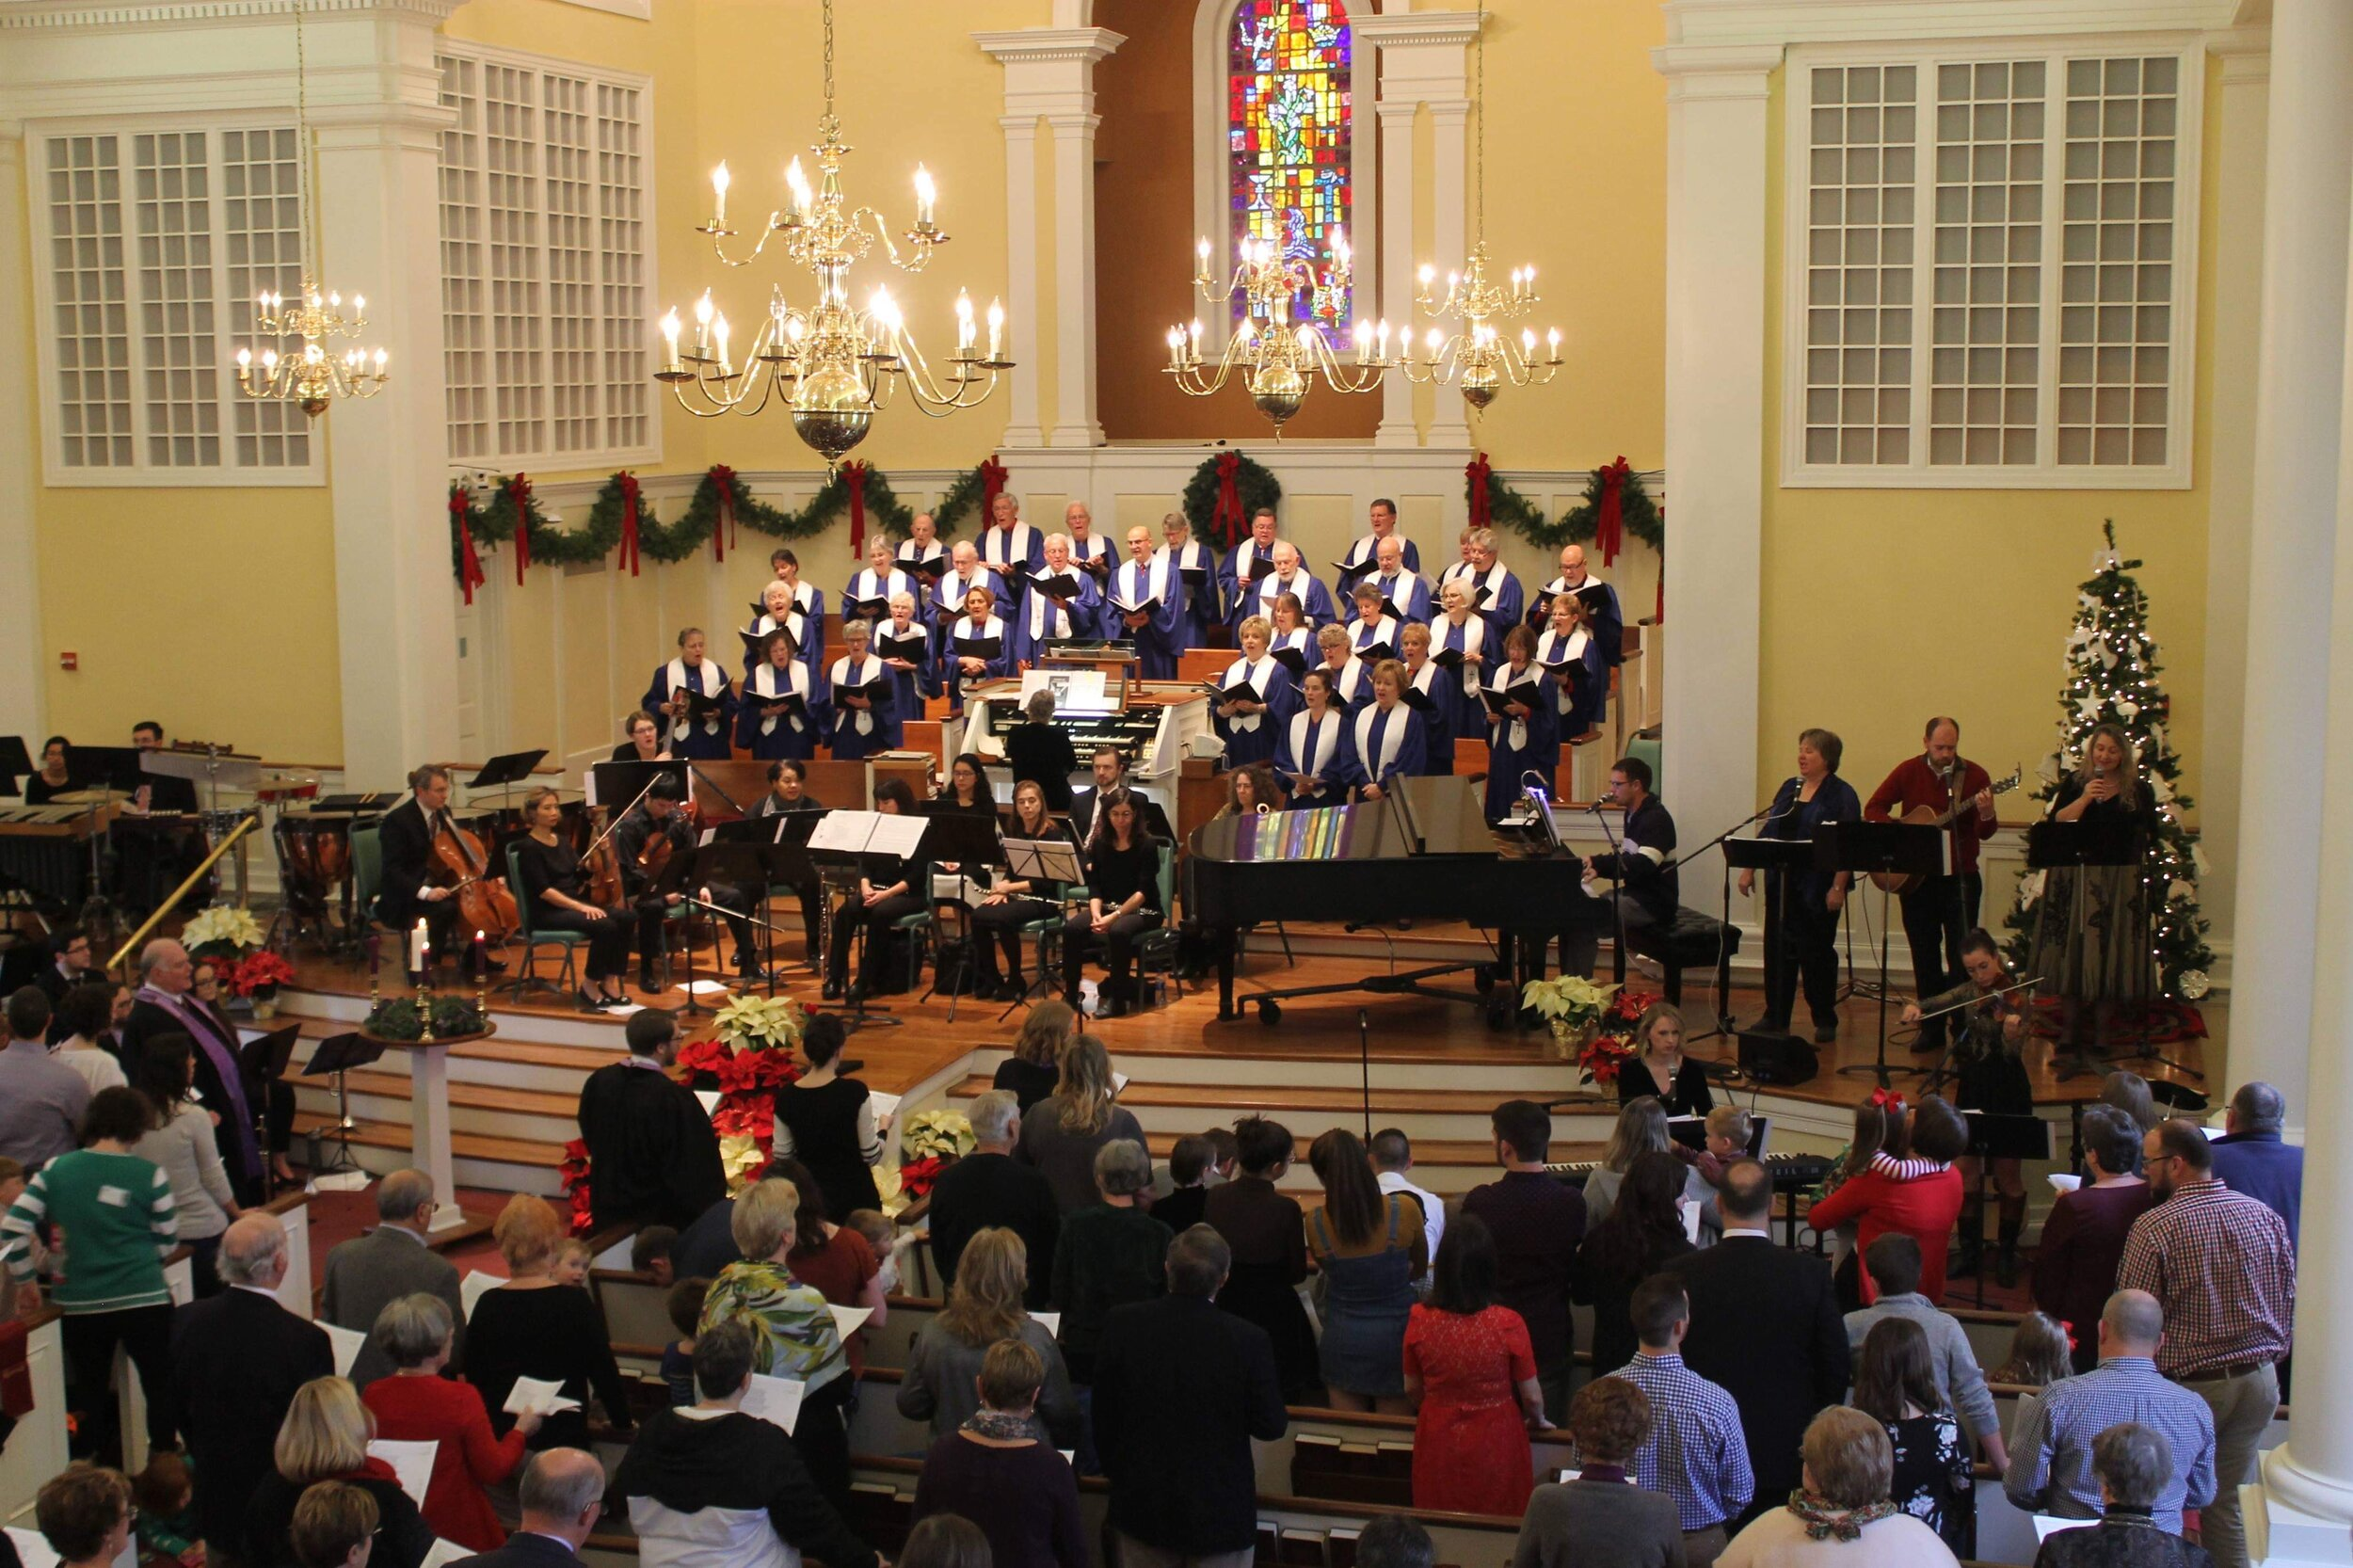 Ageless Joy - All-Choir-Led Worship Service | 11am | December 22